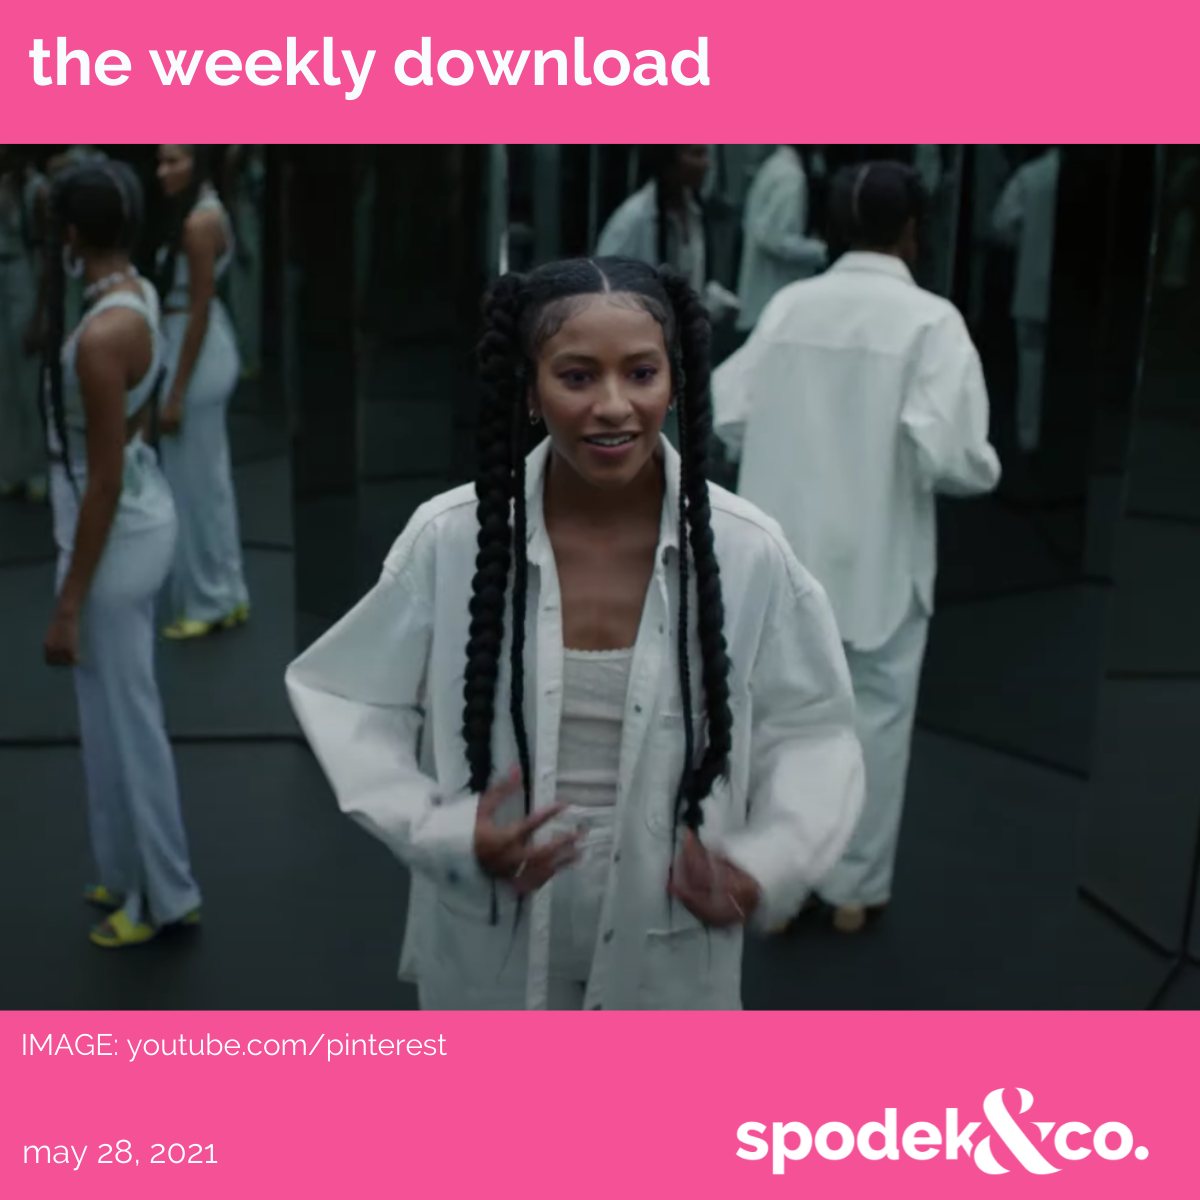 The Weekly Download – May 28, 2021